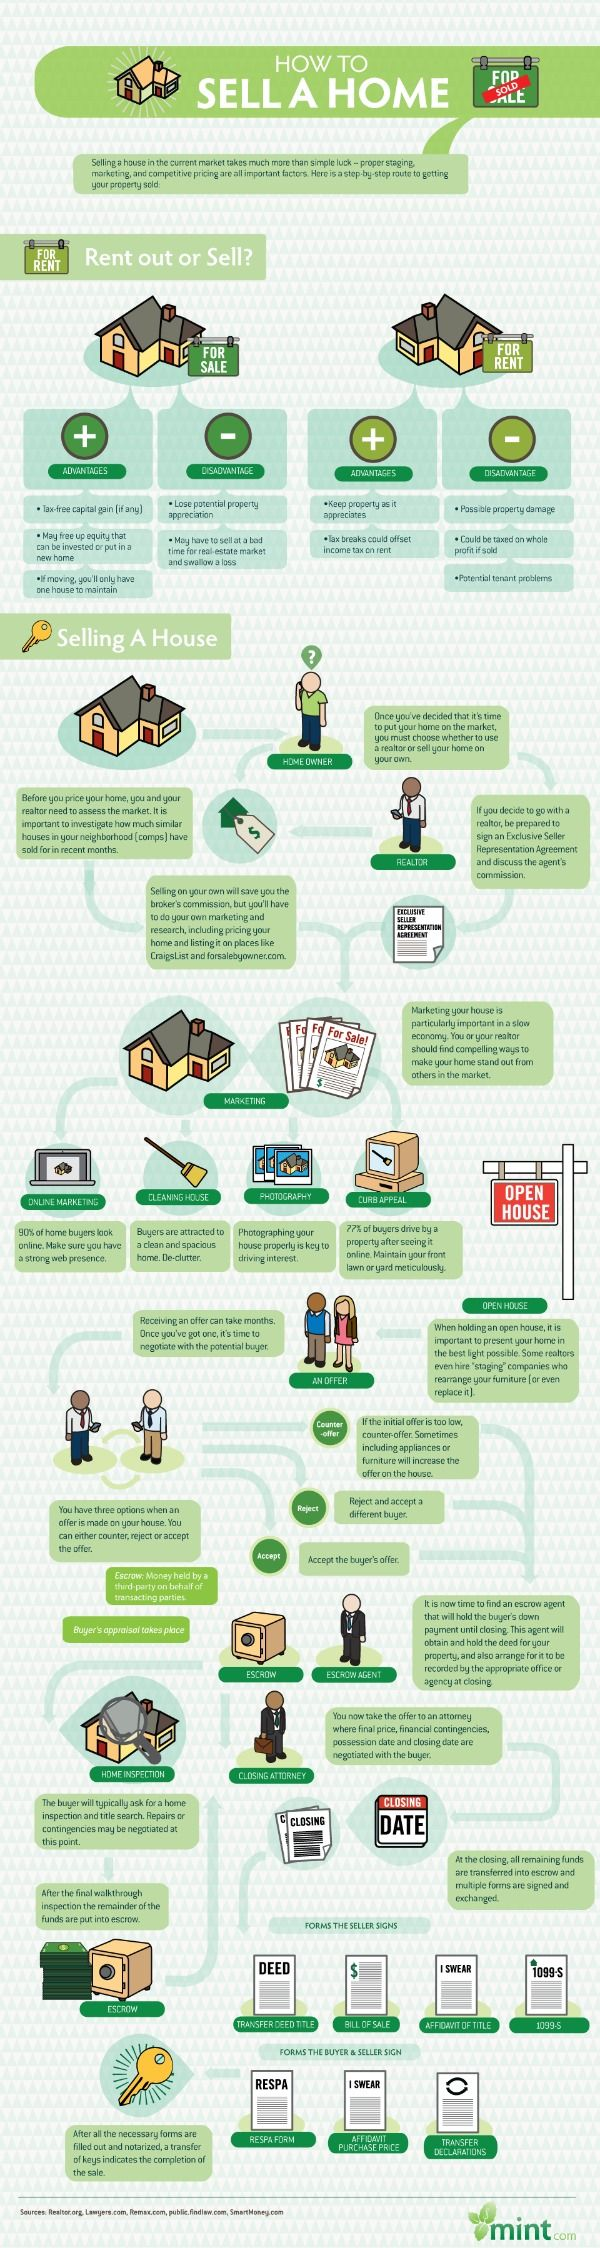 How To Sell Your Home  -- This is good information whether you are a For Sale Buy Owner, FSBO, or working with a real estate agent to sell your home.  Either way, the more you know about the process of selling a home and what to expect, the easier it will go on all parties involved.